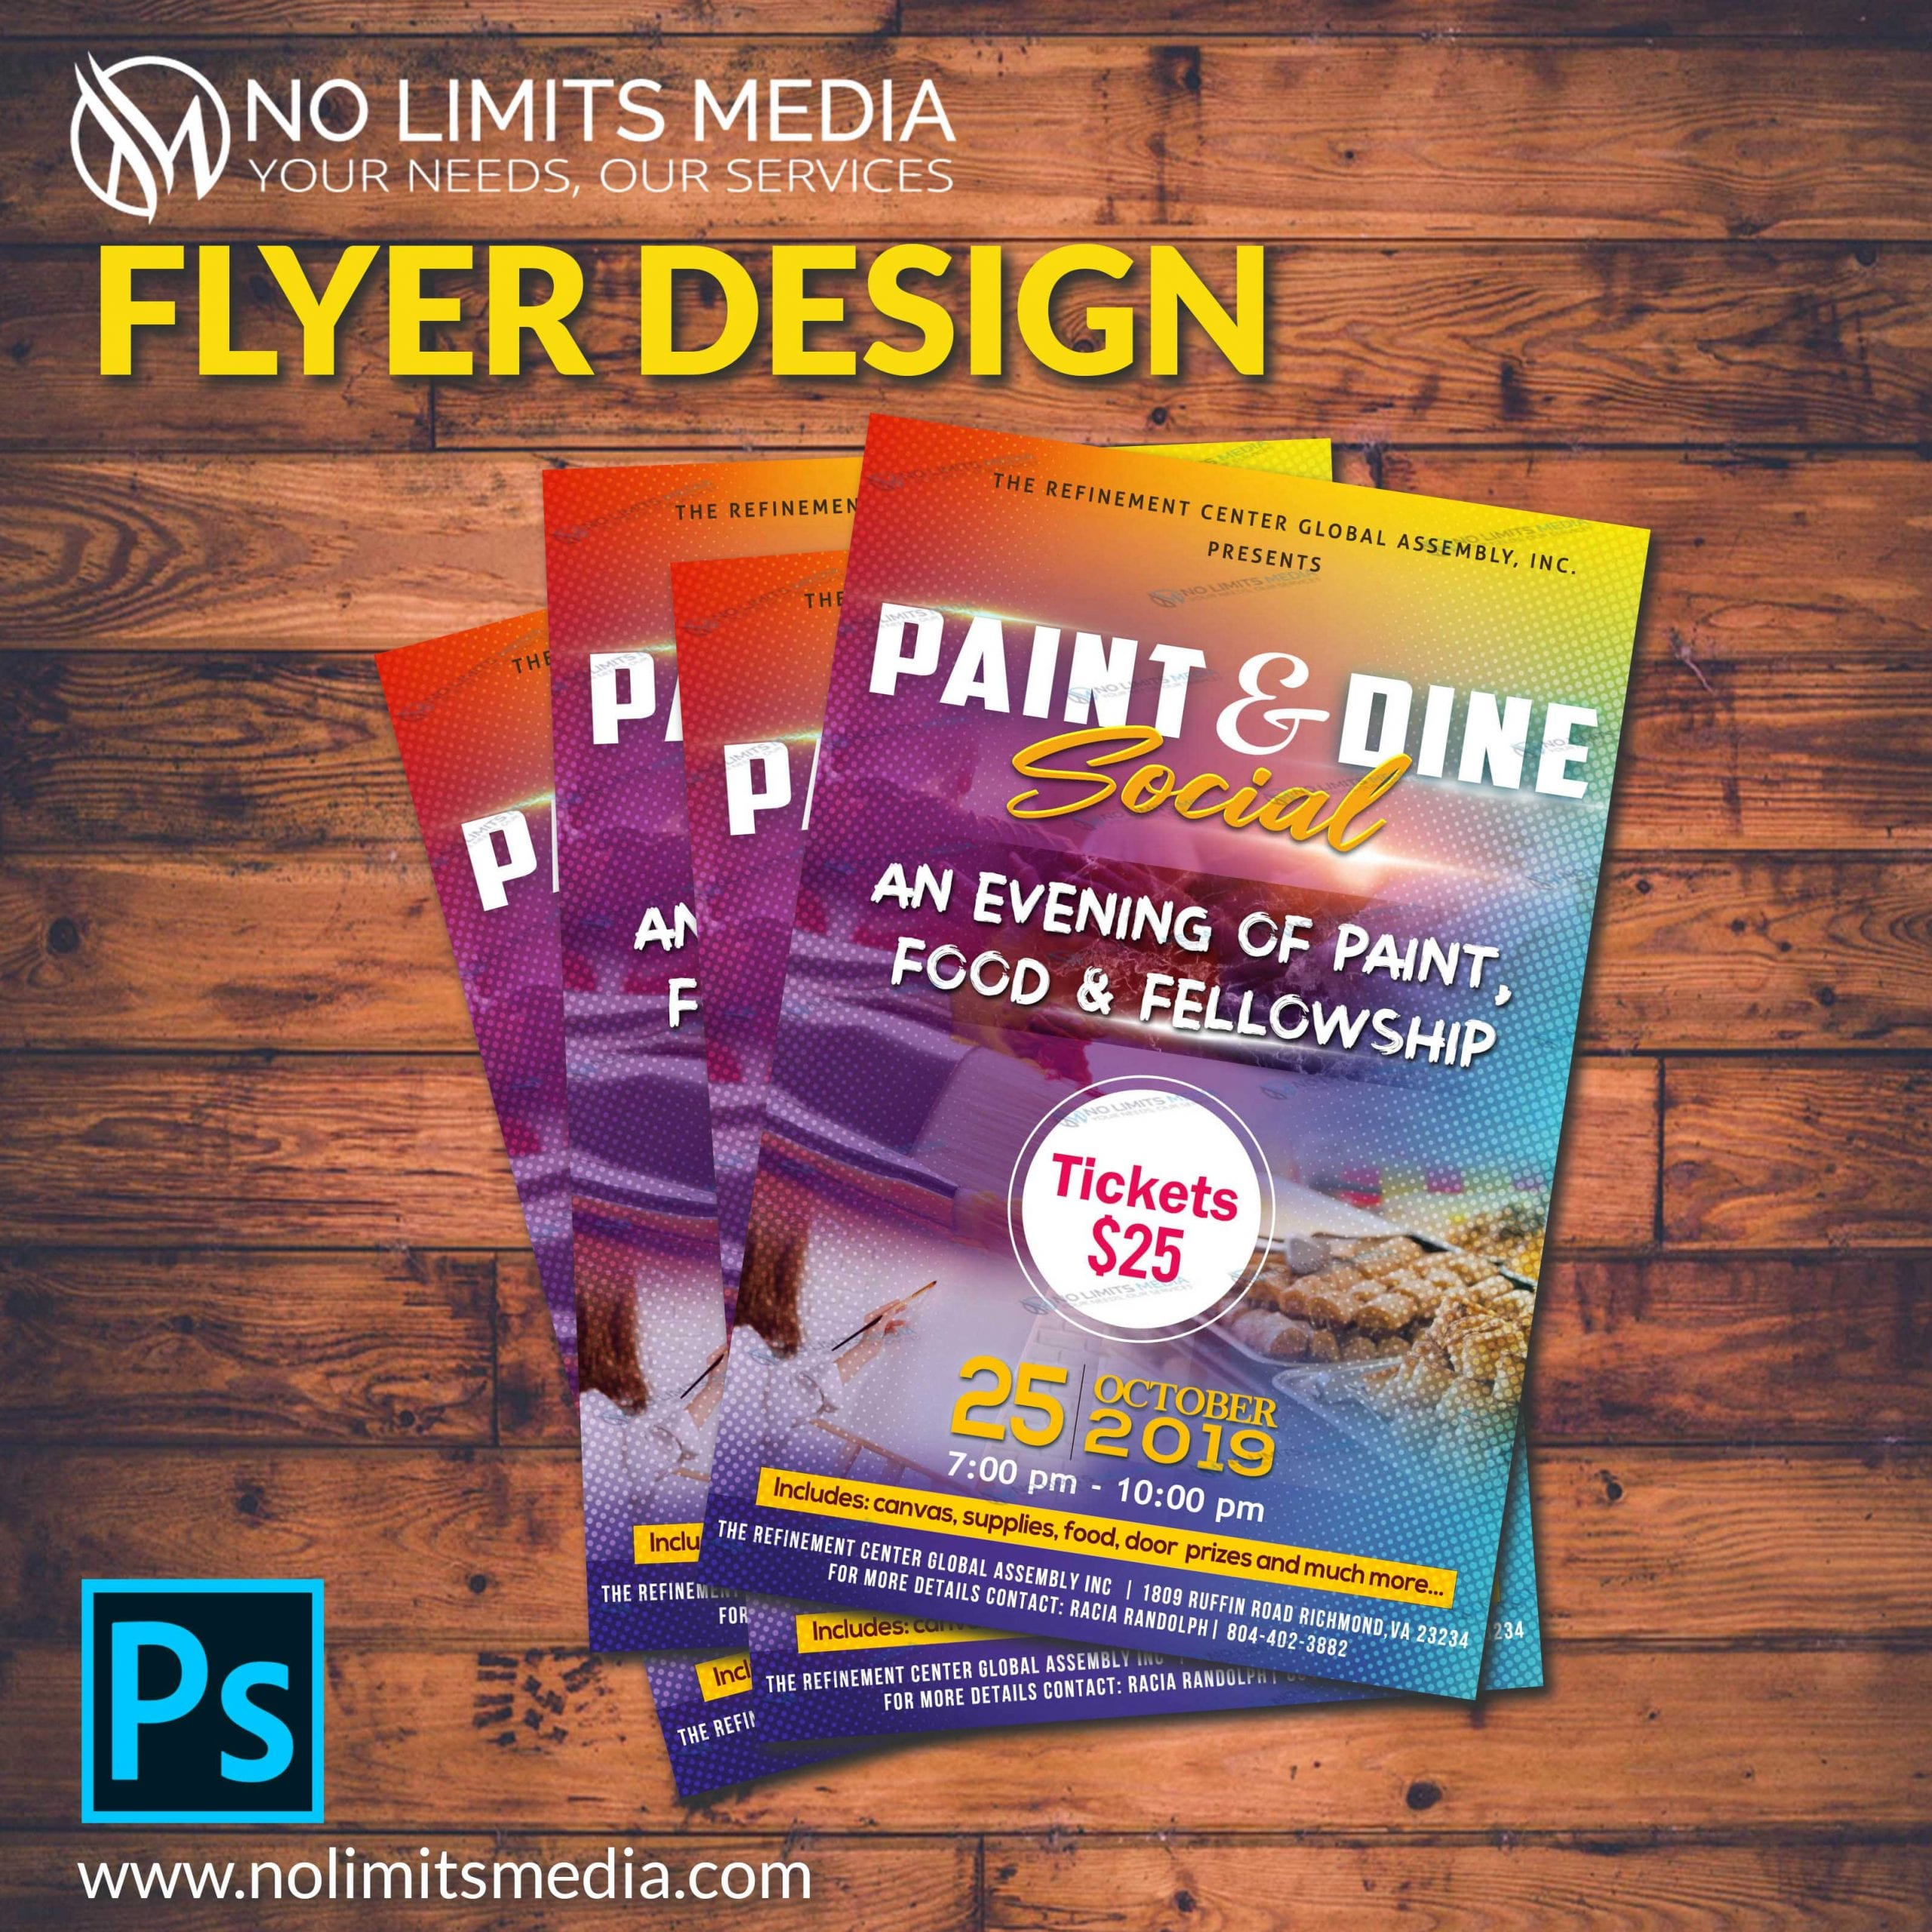 RCGA-Paint-and-Dine-Social-Graphic-Flyers-v15-copy.jpg